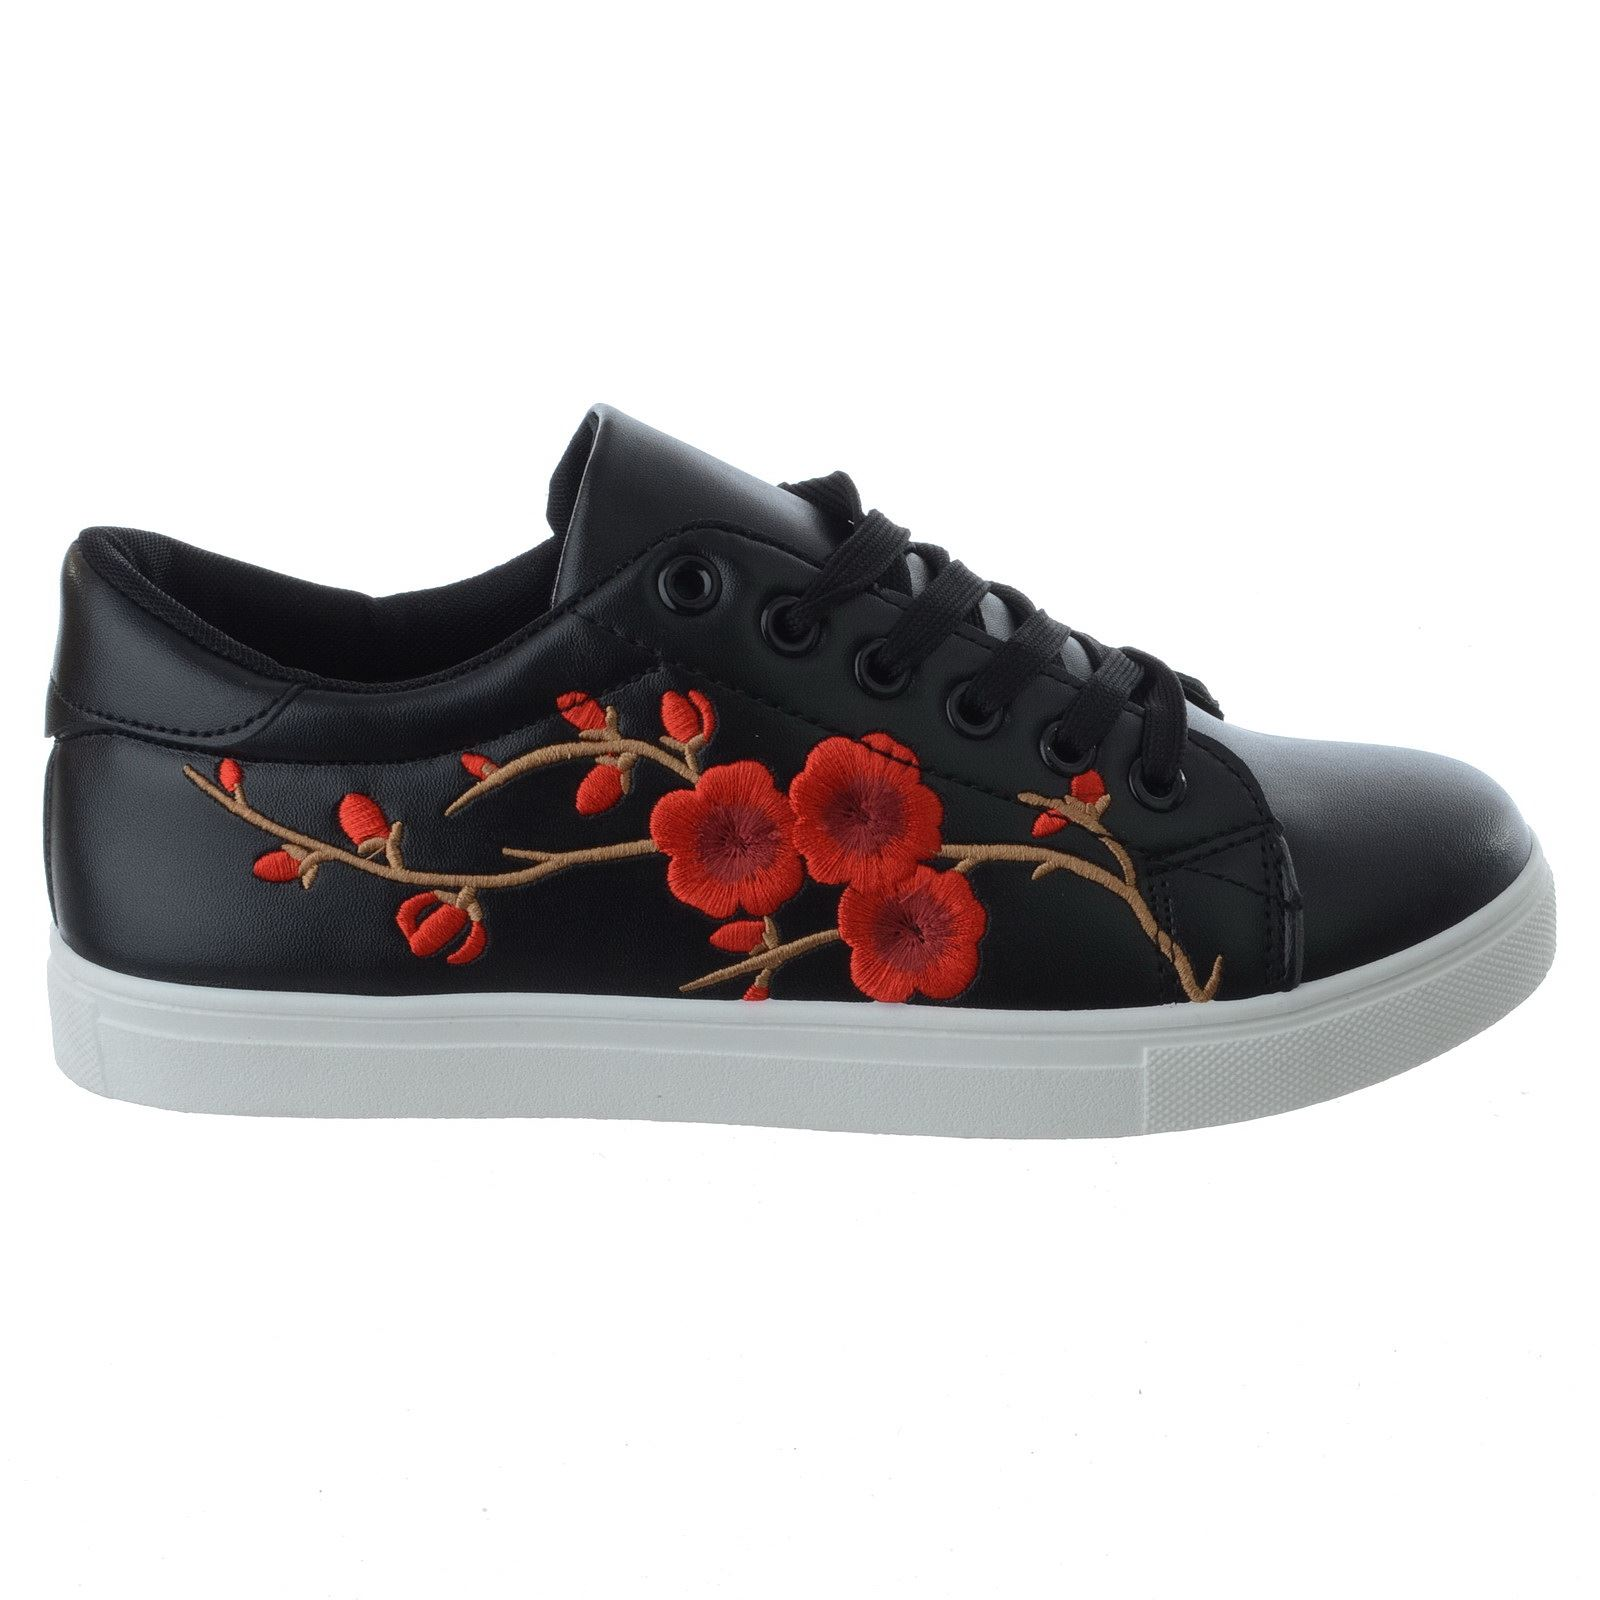 WOMENS LADIES NEW FLORAL EMBROIDERED LOW FLAT LACE UP LADIES TRAINERS PUMPS SIZE